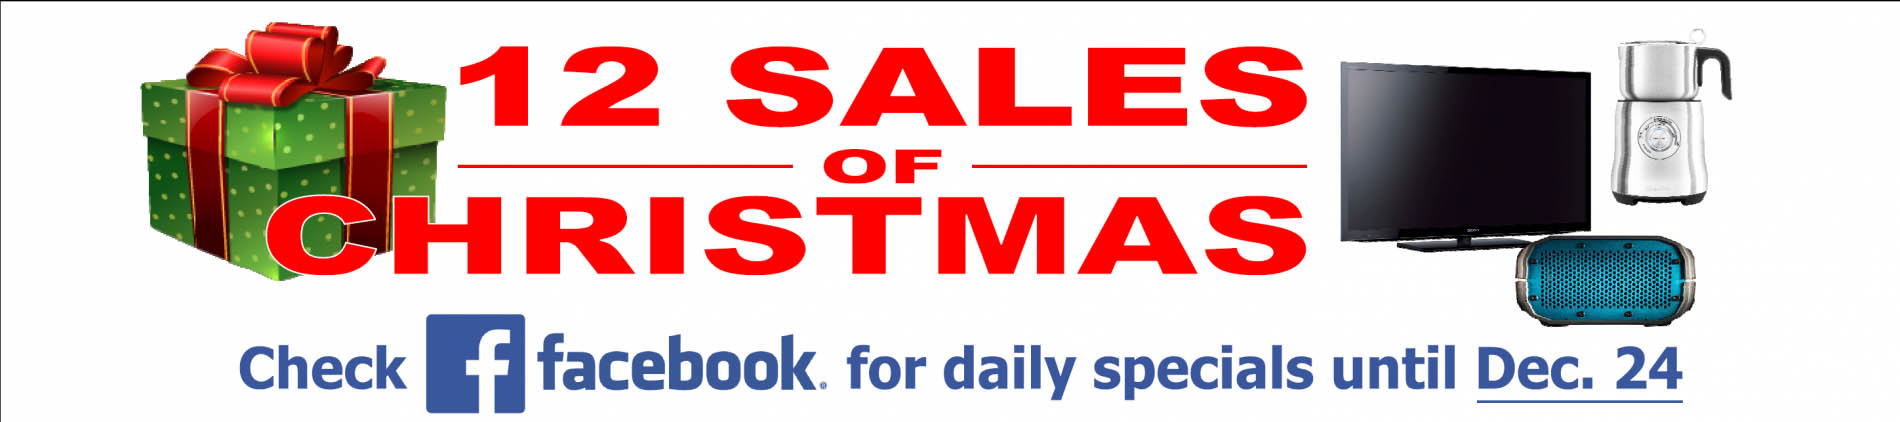 12 sales of Christmas